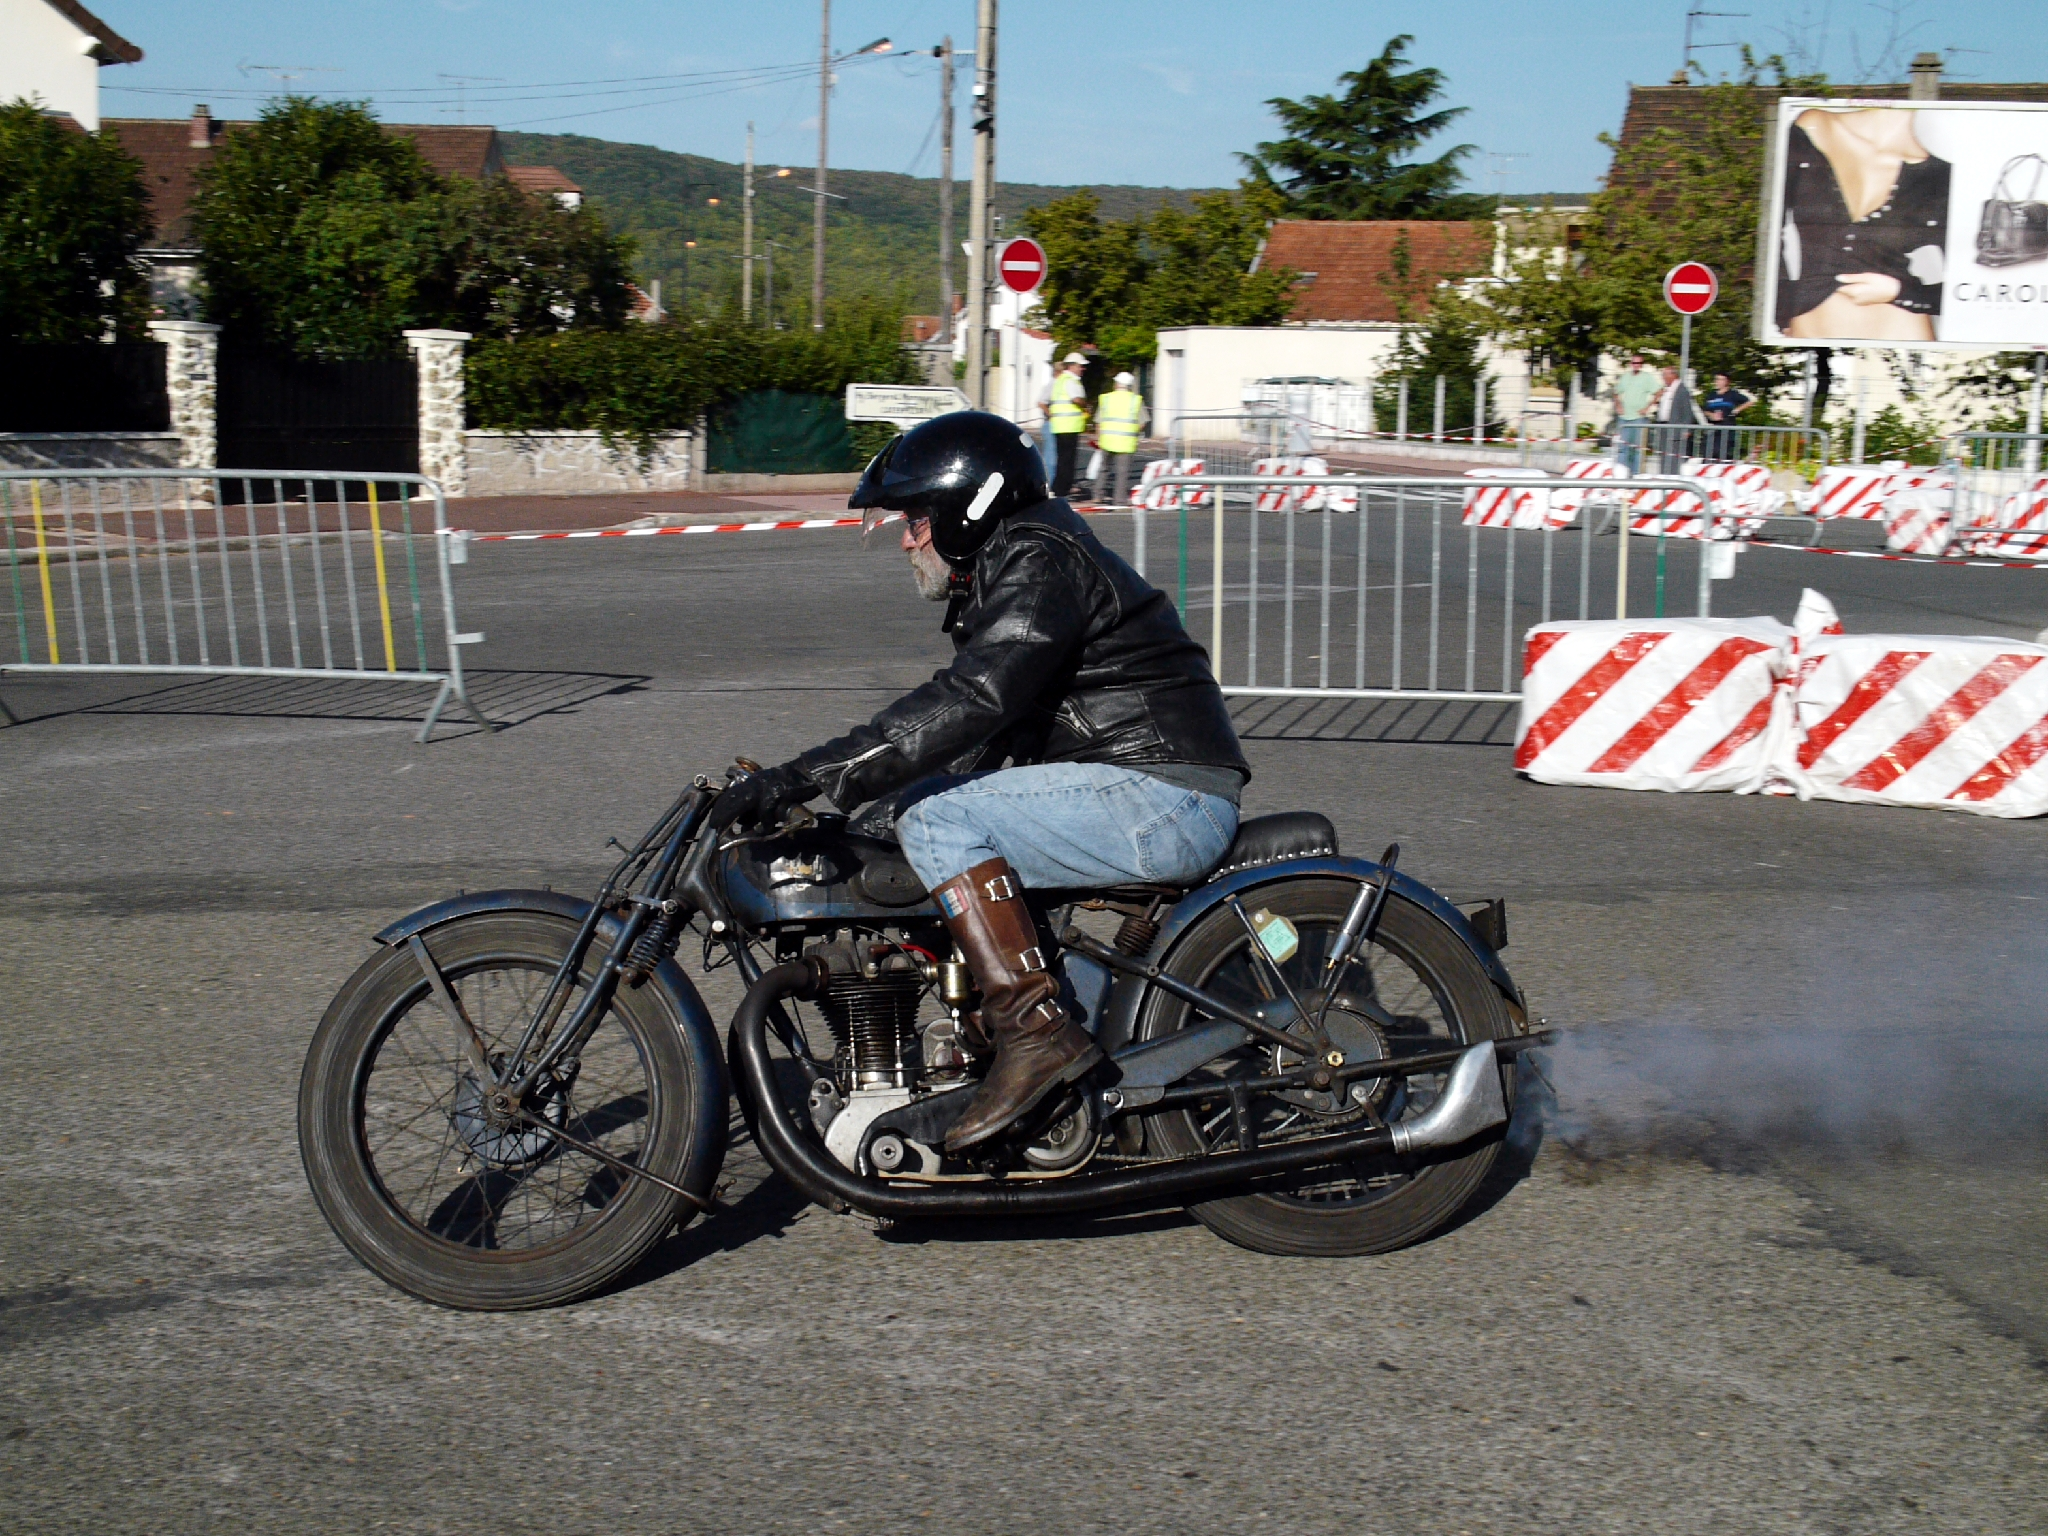 A Course Motorcycle